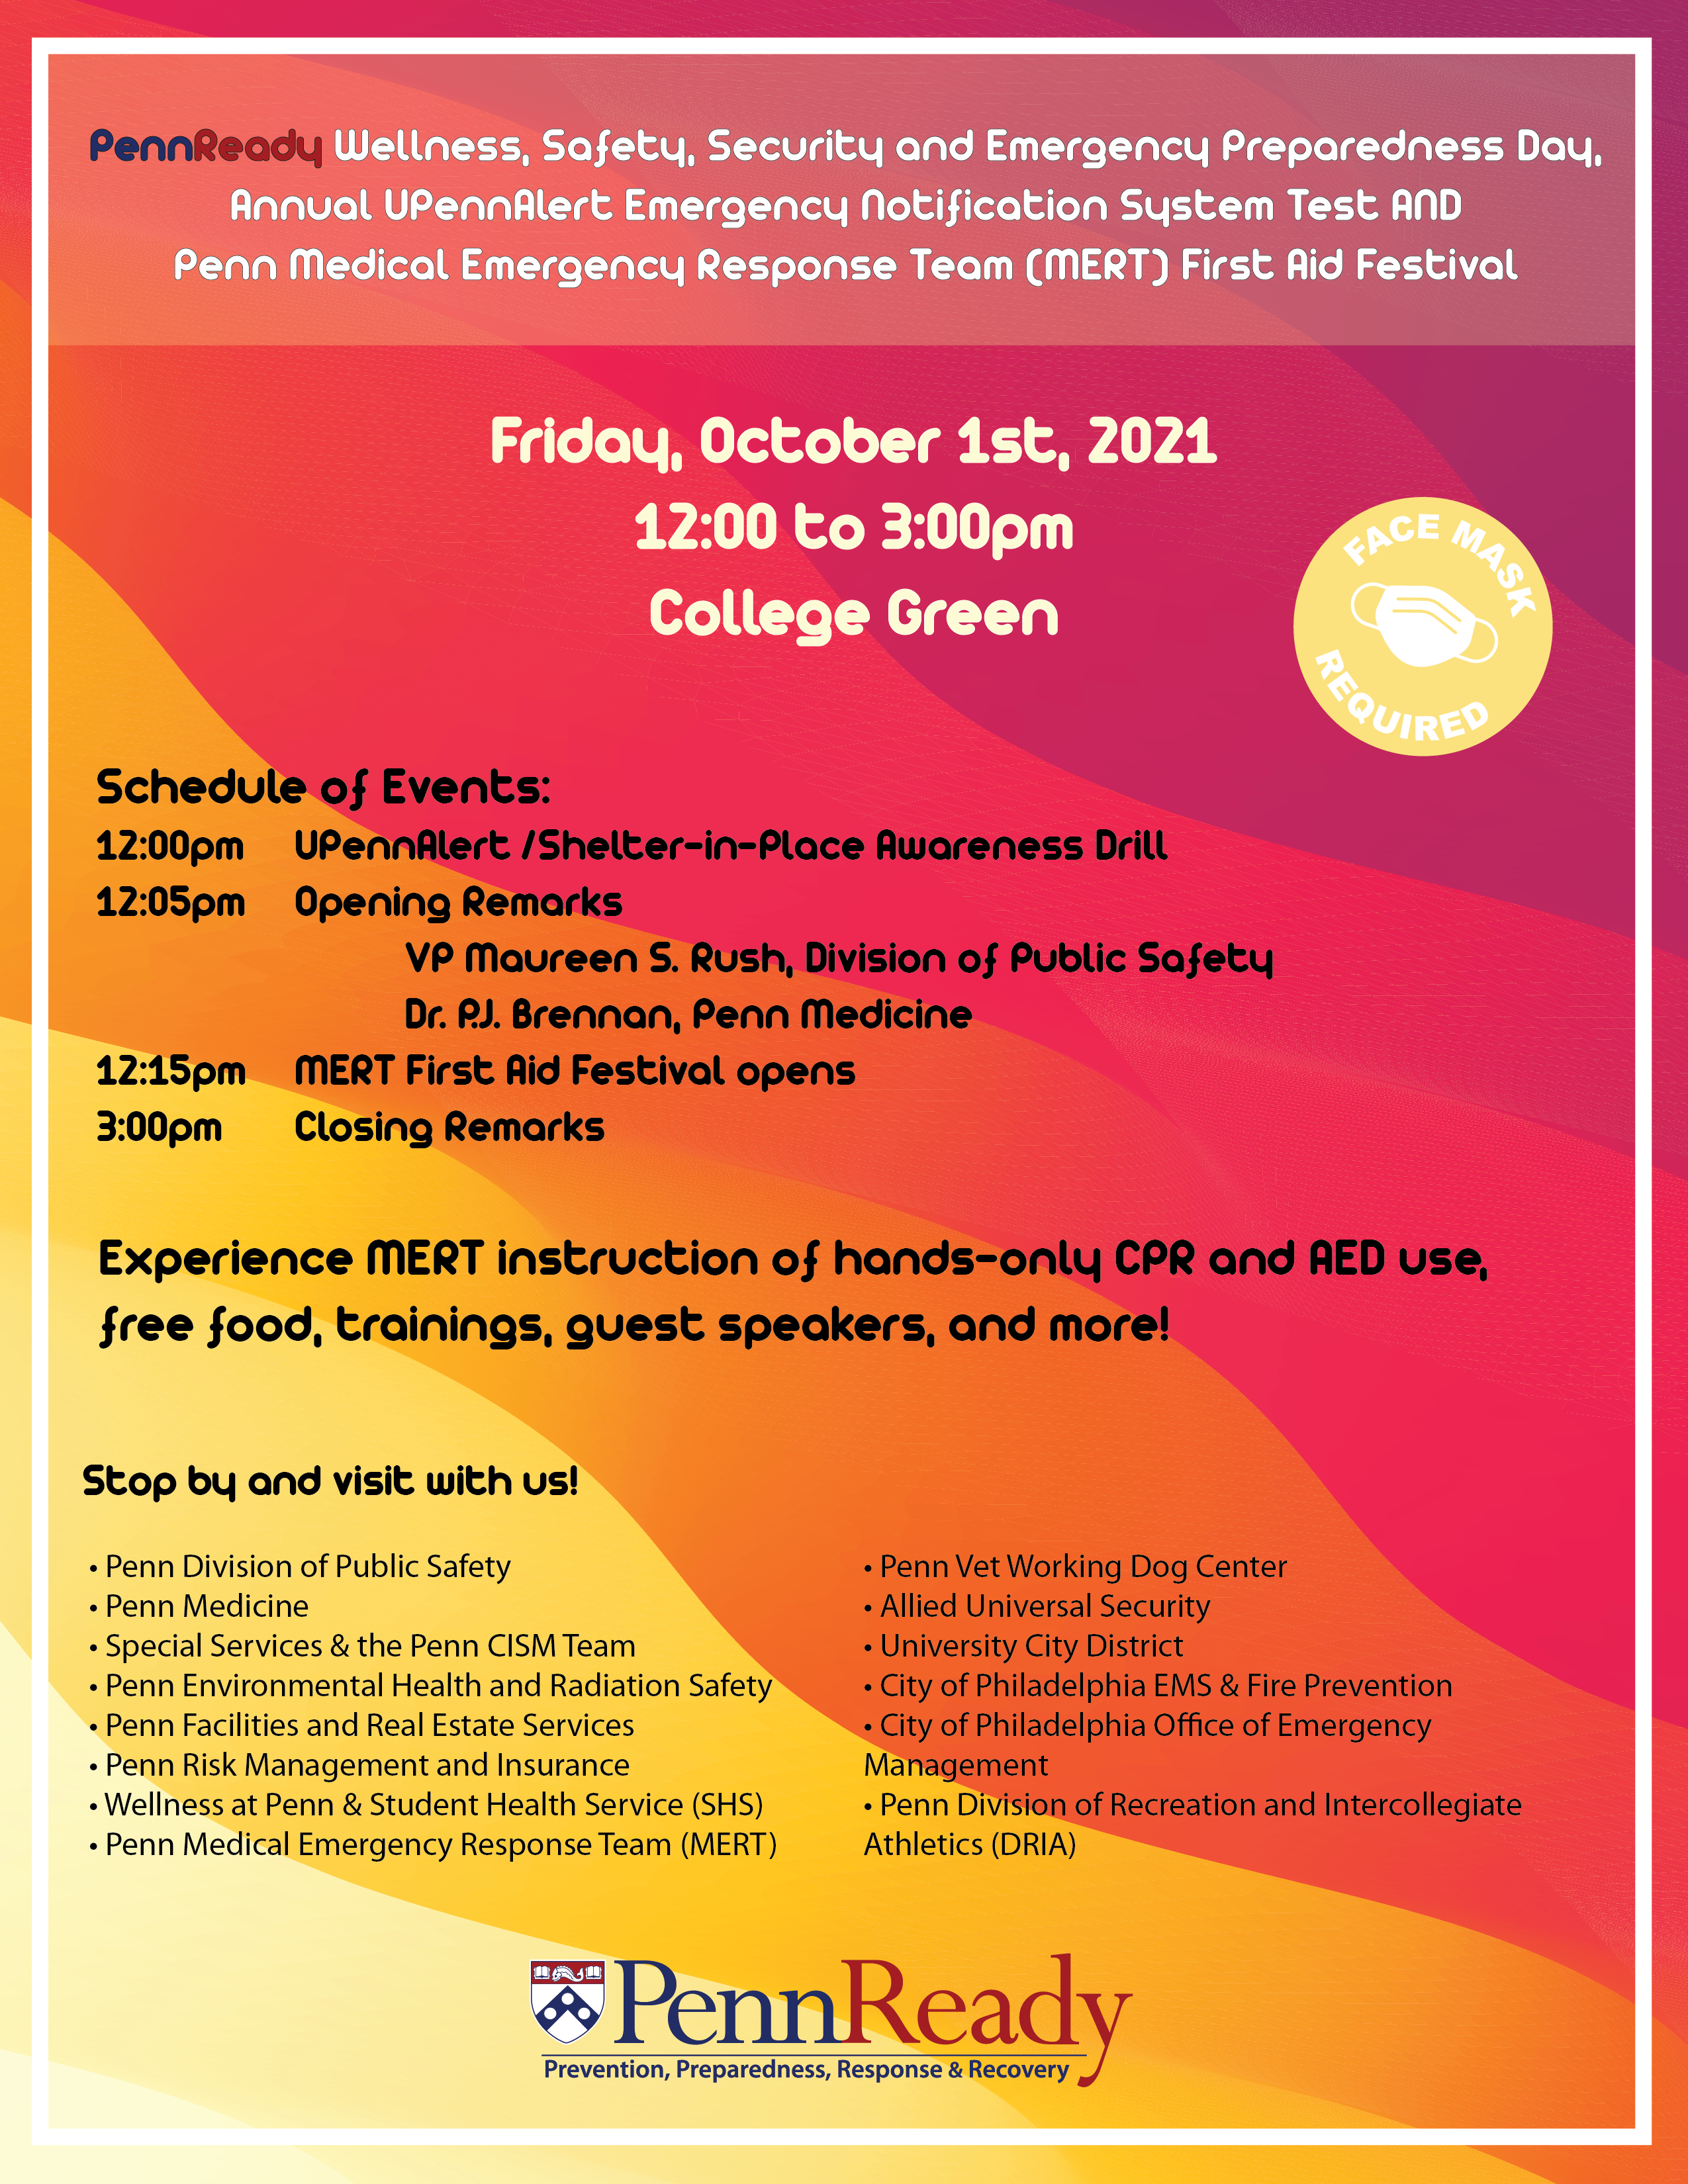 Poster for PennReady event: text same as article